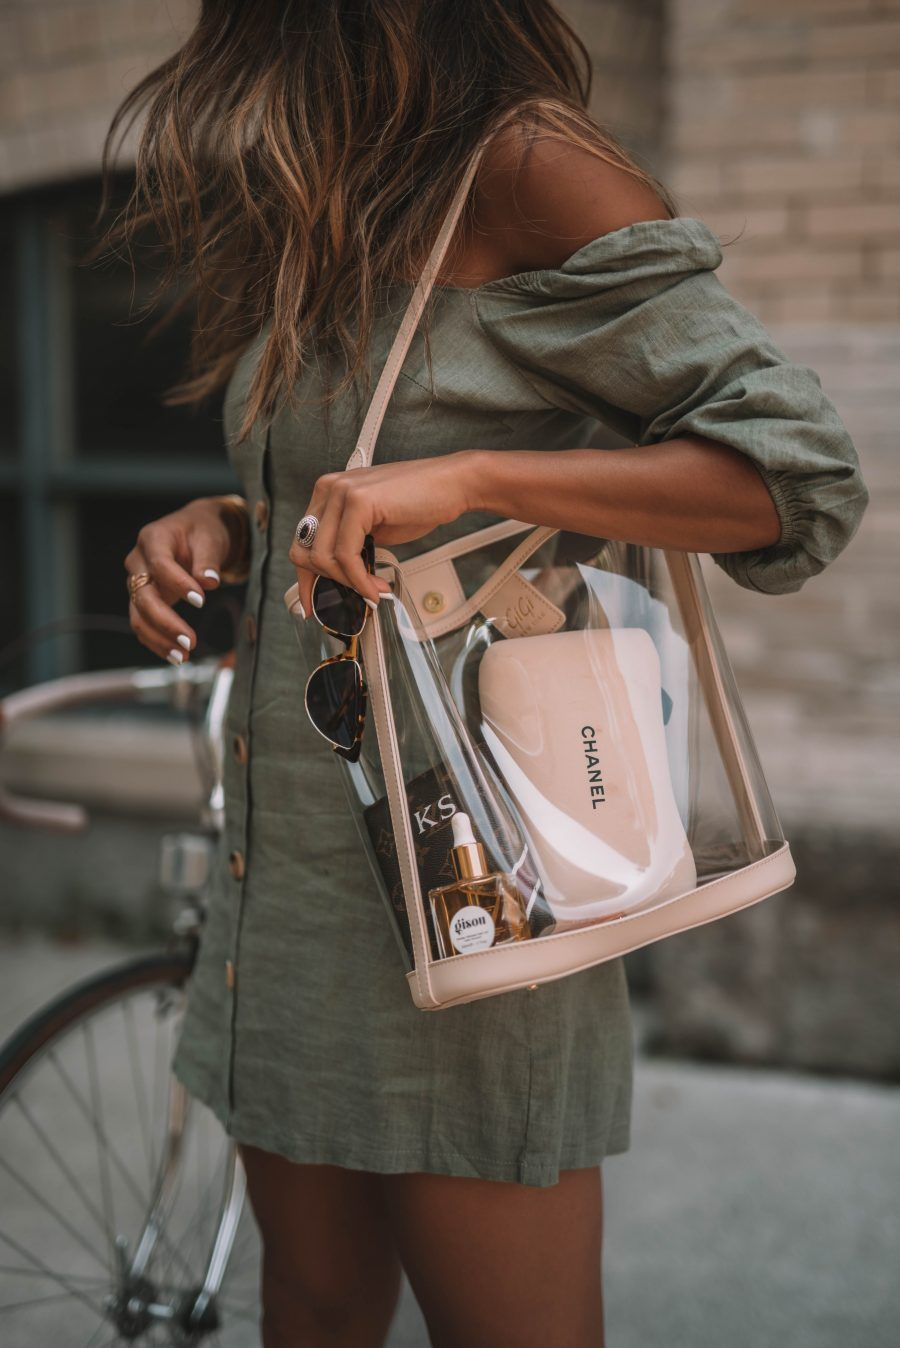 Image result for Why Women Love Fashion Accessories